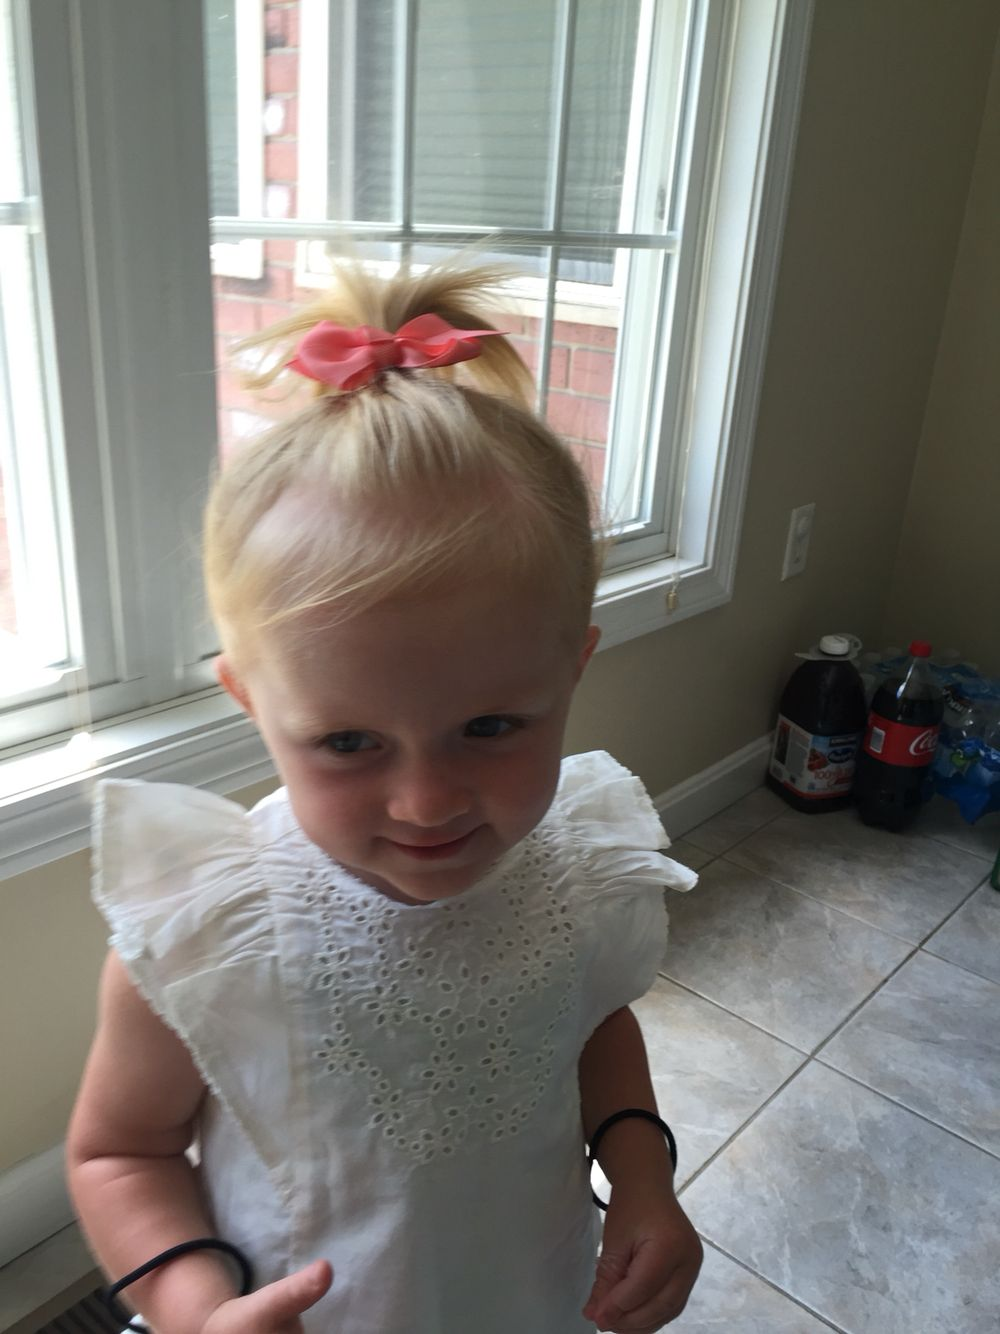 hair up with a little puff little 2 year old girl